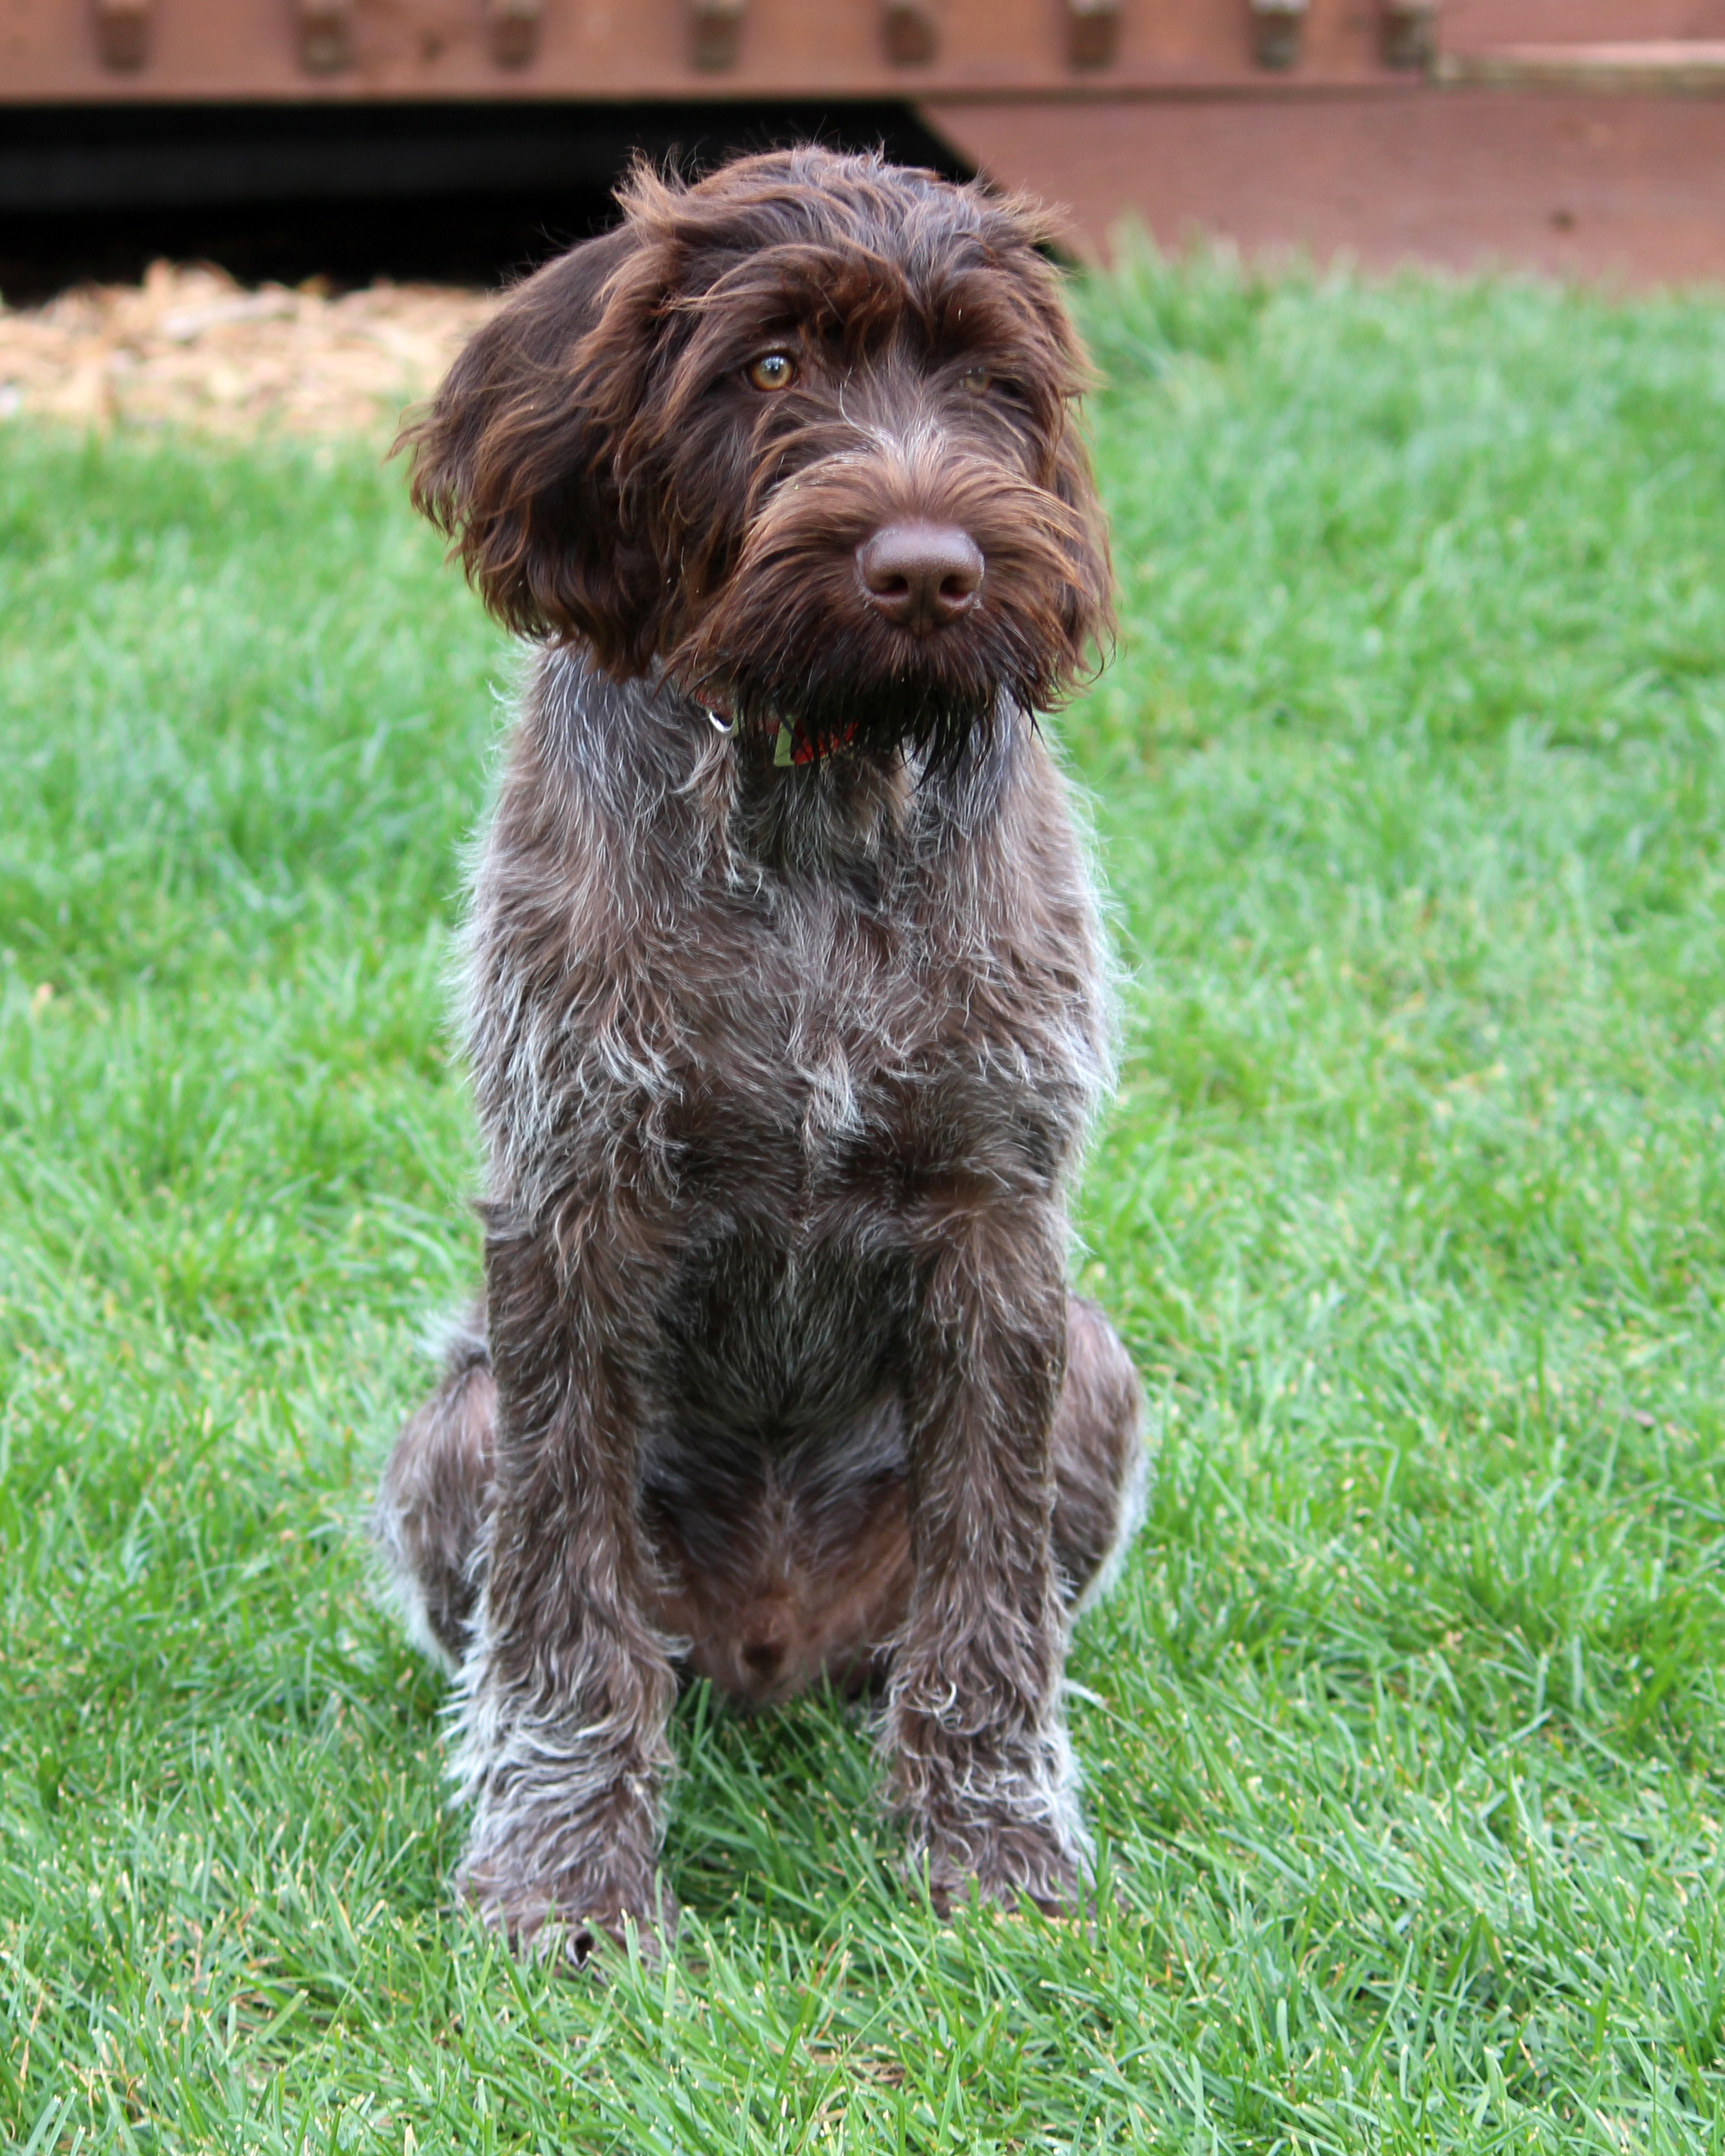 Slovakian Rough-haired Pointer Puppies: Slovakian Sitting German Wirehaired Pointer Dog Breed